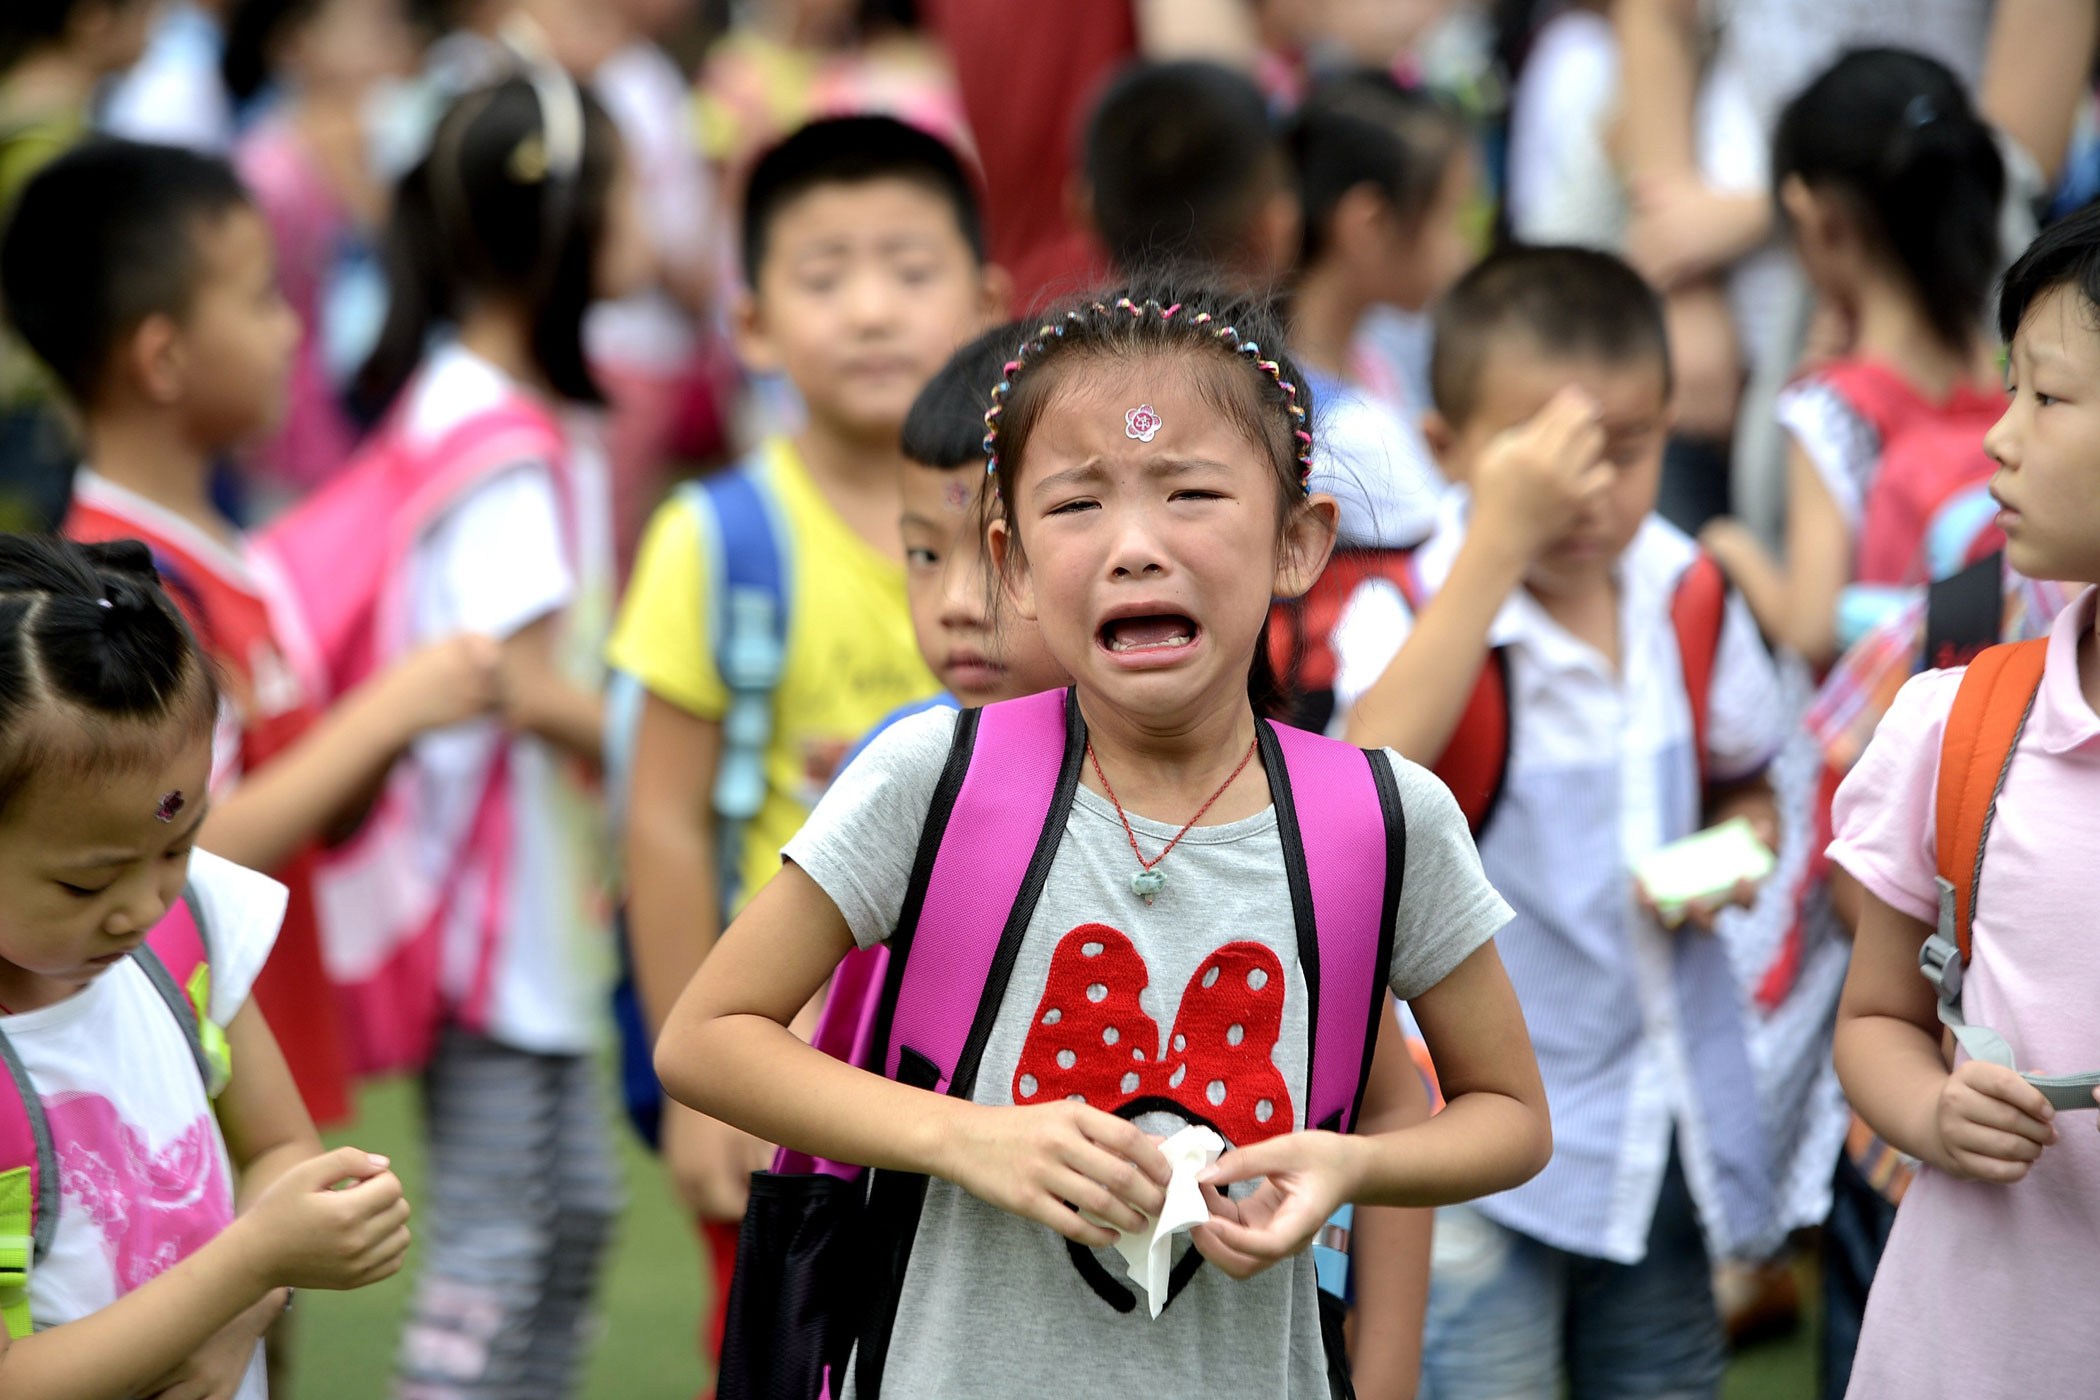 Elementary school students enter school with their parents on Sept. 1, 2014 in Jinan, Shandong province of China. Monday is the first day of school in 2014.